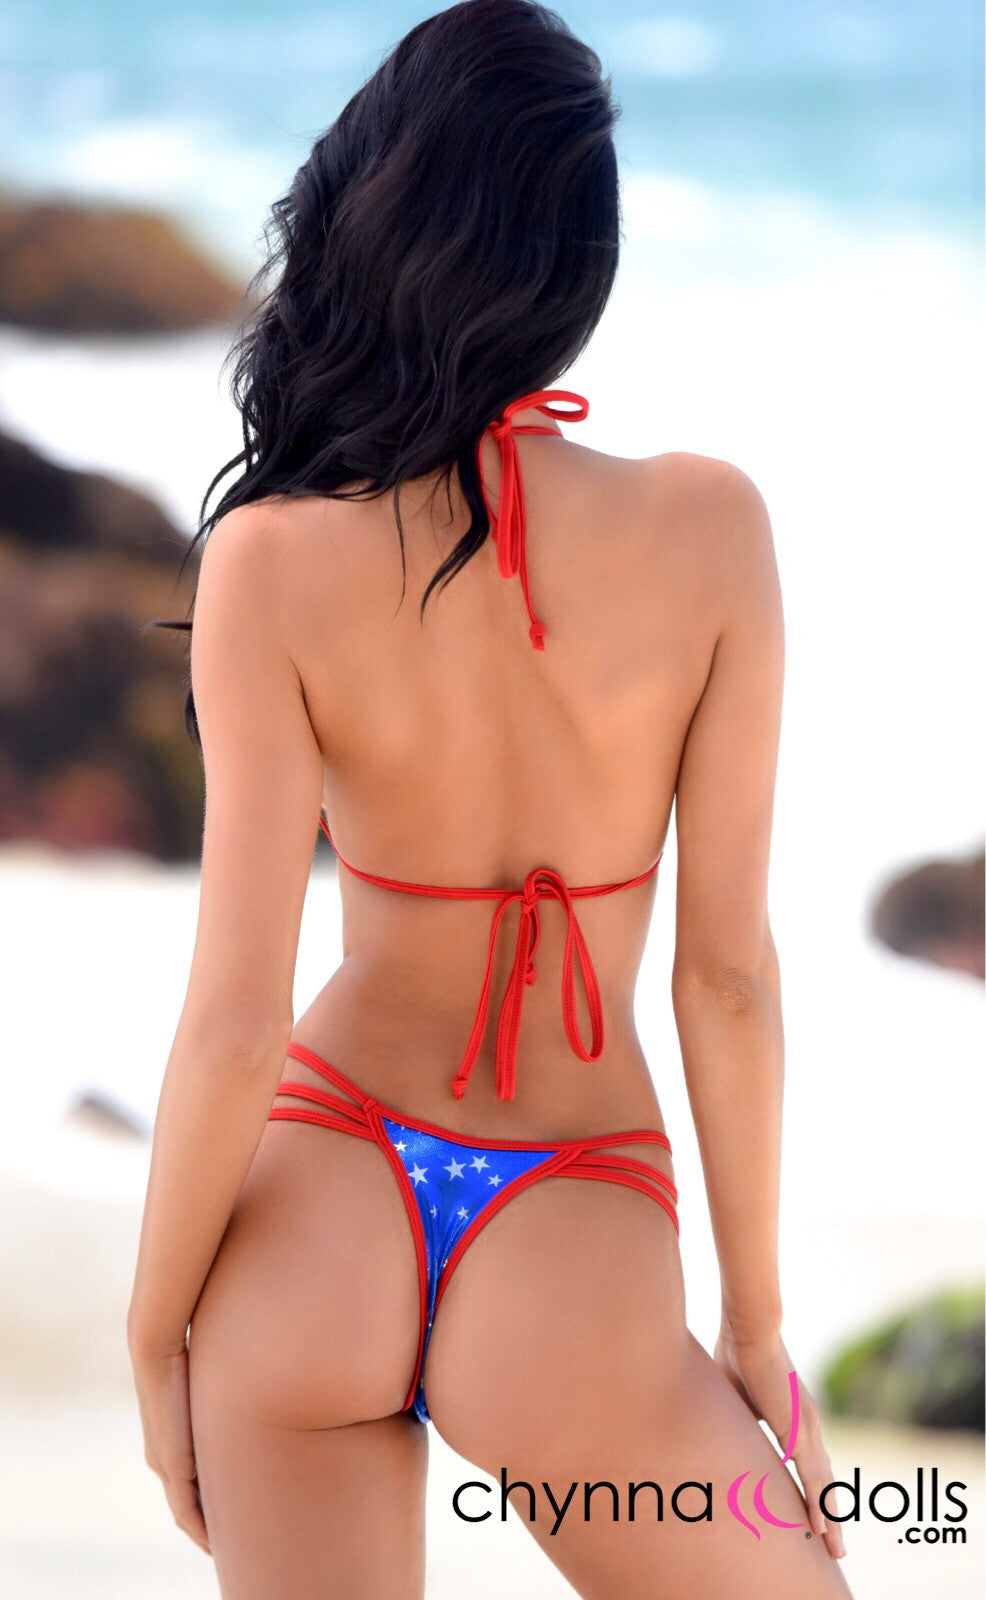 Myrtle Beach: Strappy Thong Bikini in Solid Royal/Silver Stars x Red Trim - Chynna Dolls